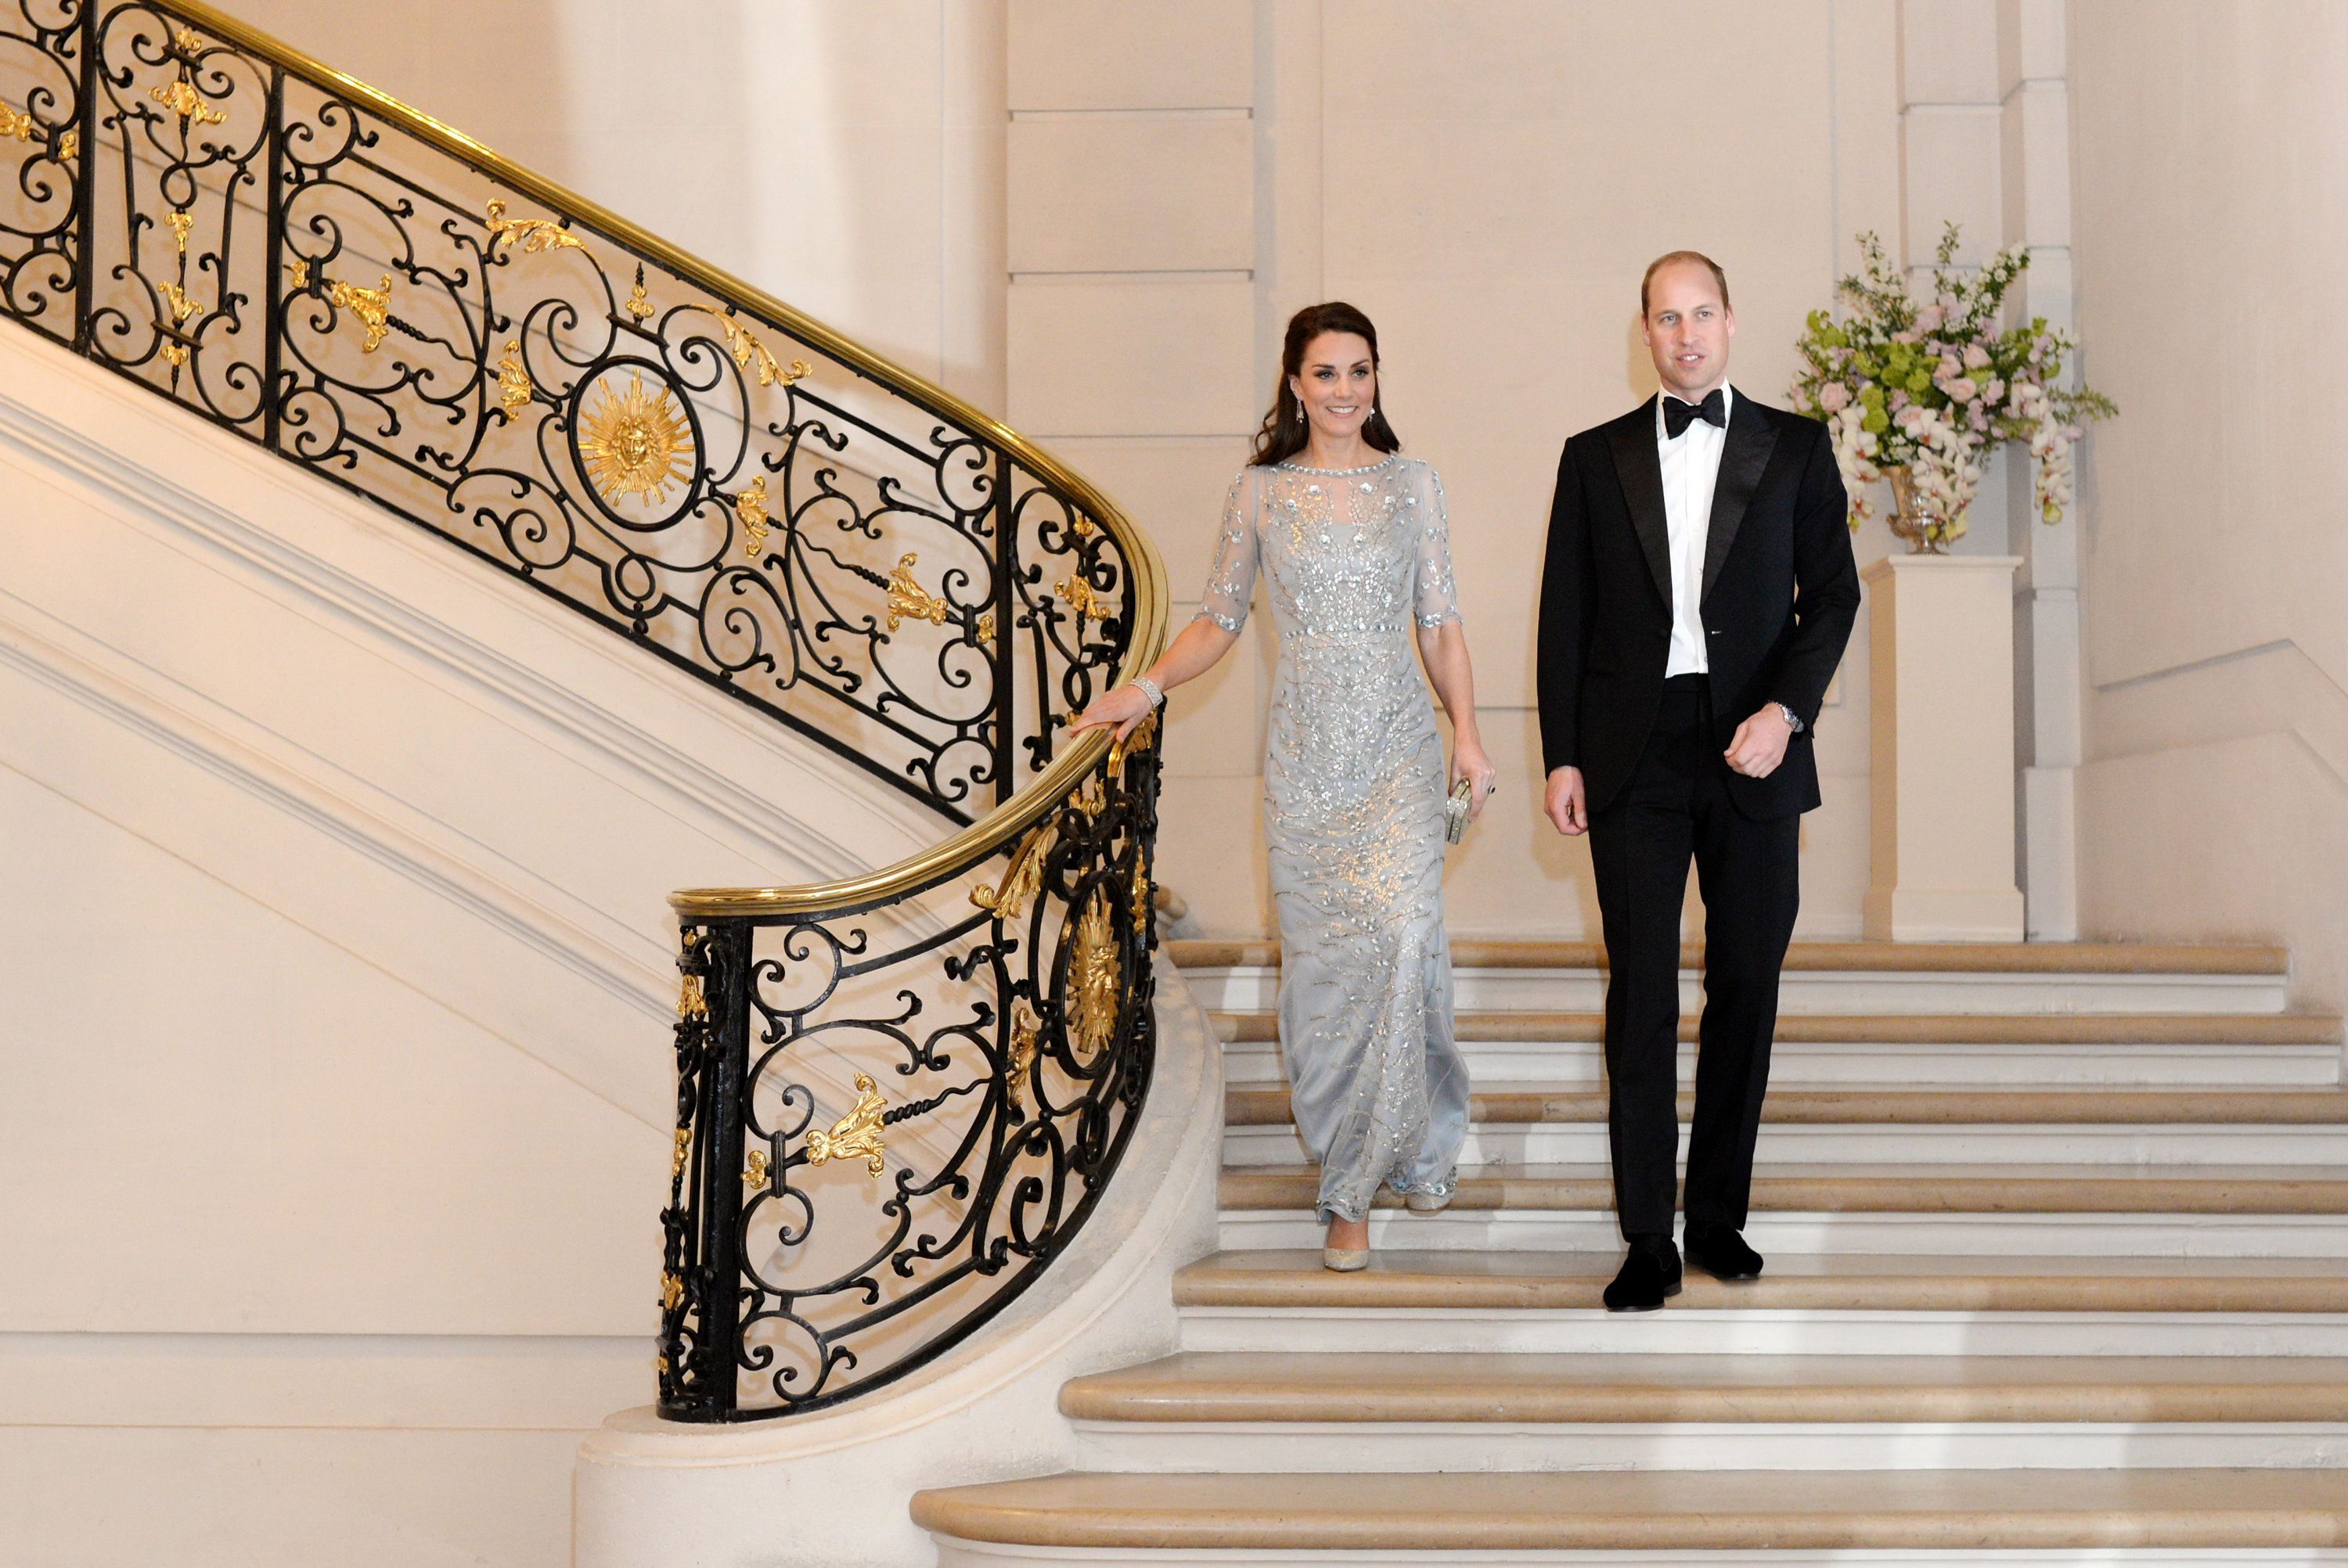 The Duchess Of Cambridge's Paris Wardrobe Was